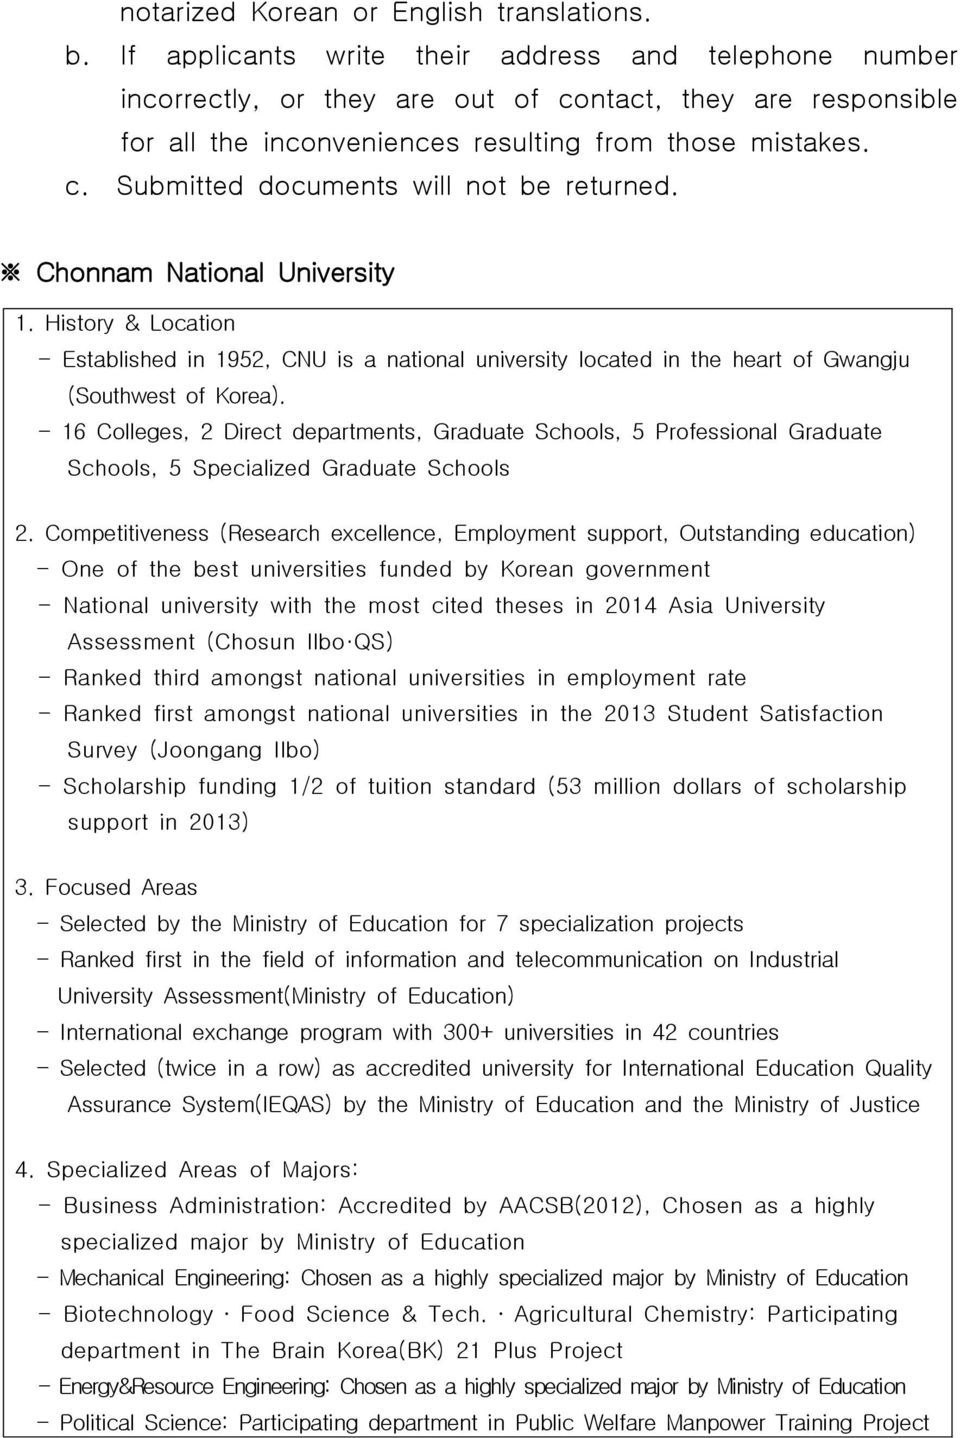 Chonnam National University 1. History & Location - Established in 1952, CNU is a national university located in the heart of Gwangju (Southwest of Korea).